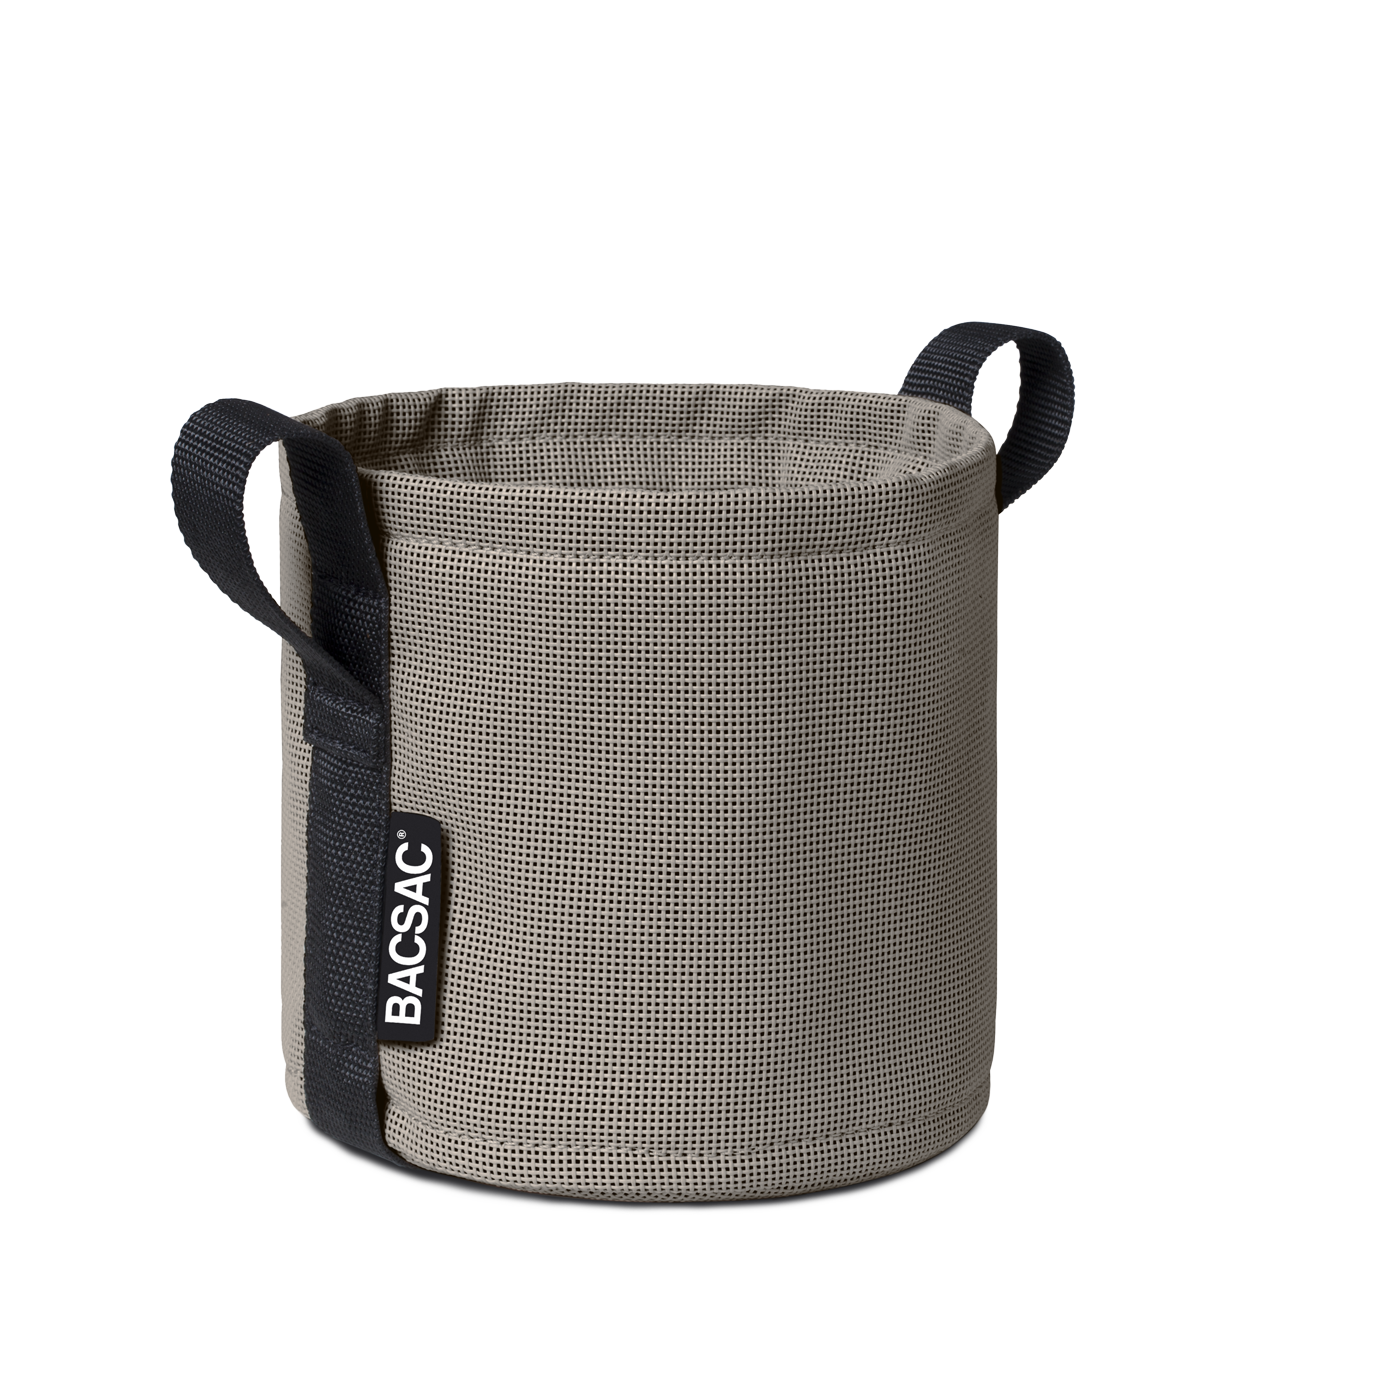 Bacsquare 9 kitchen garden (330L) Taupe